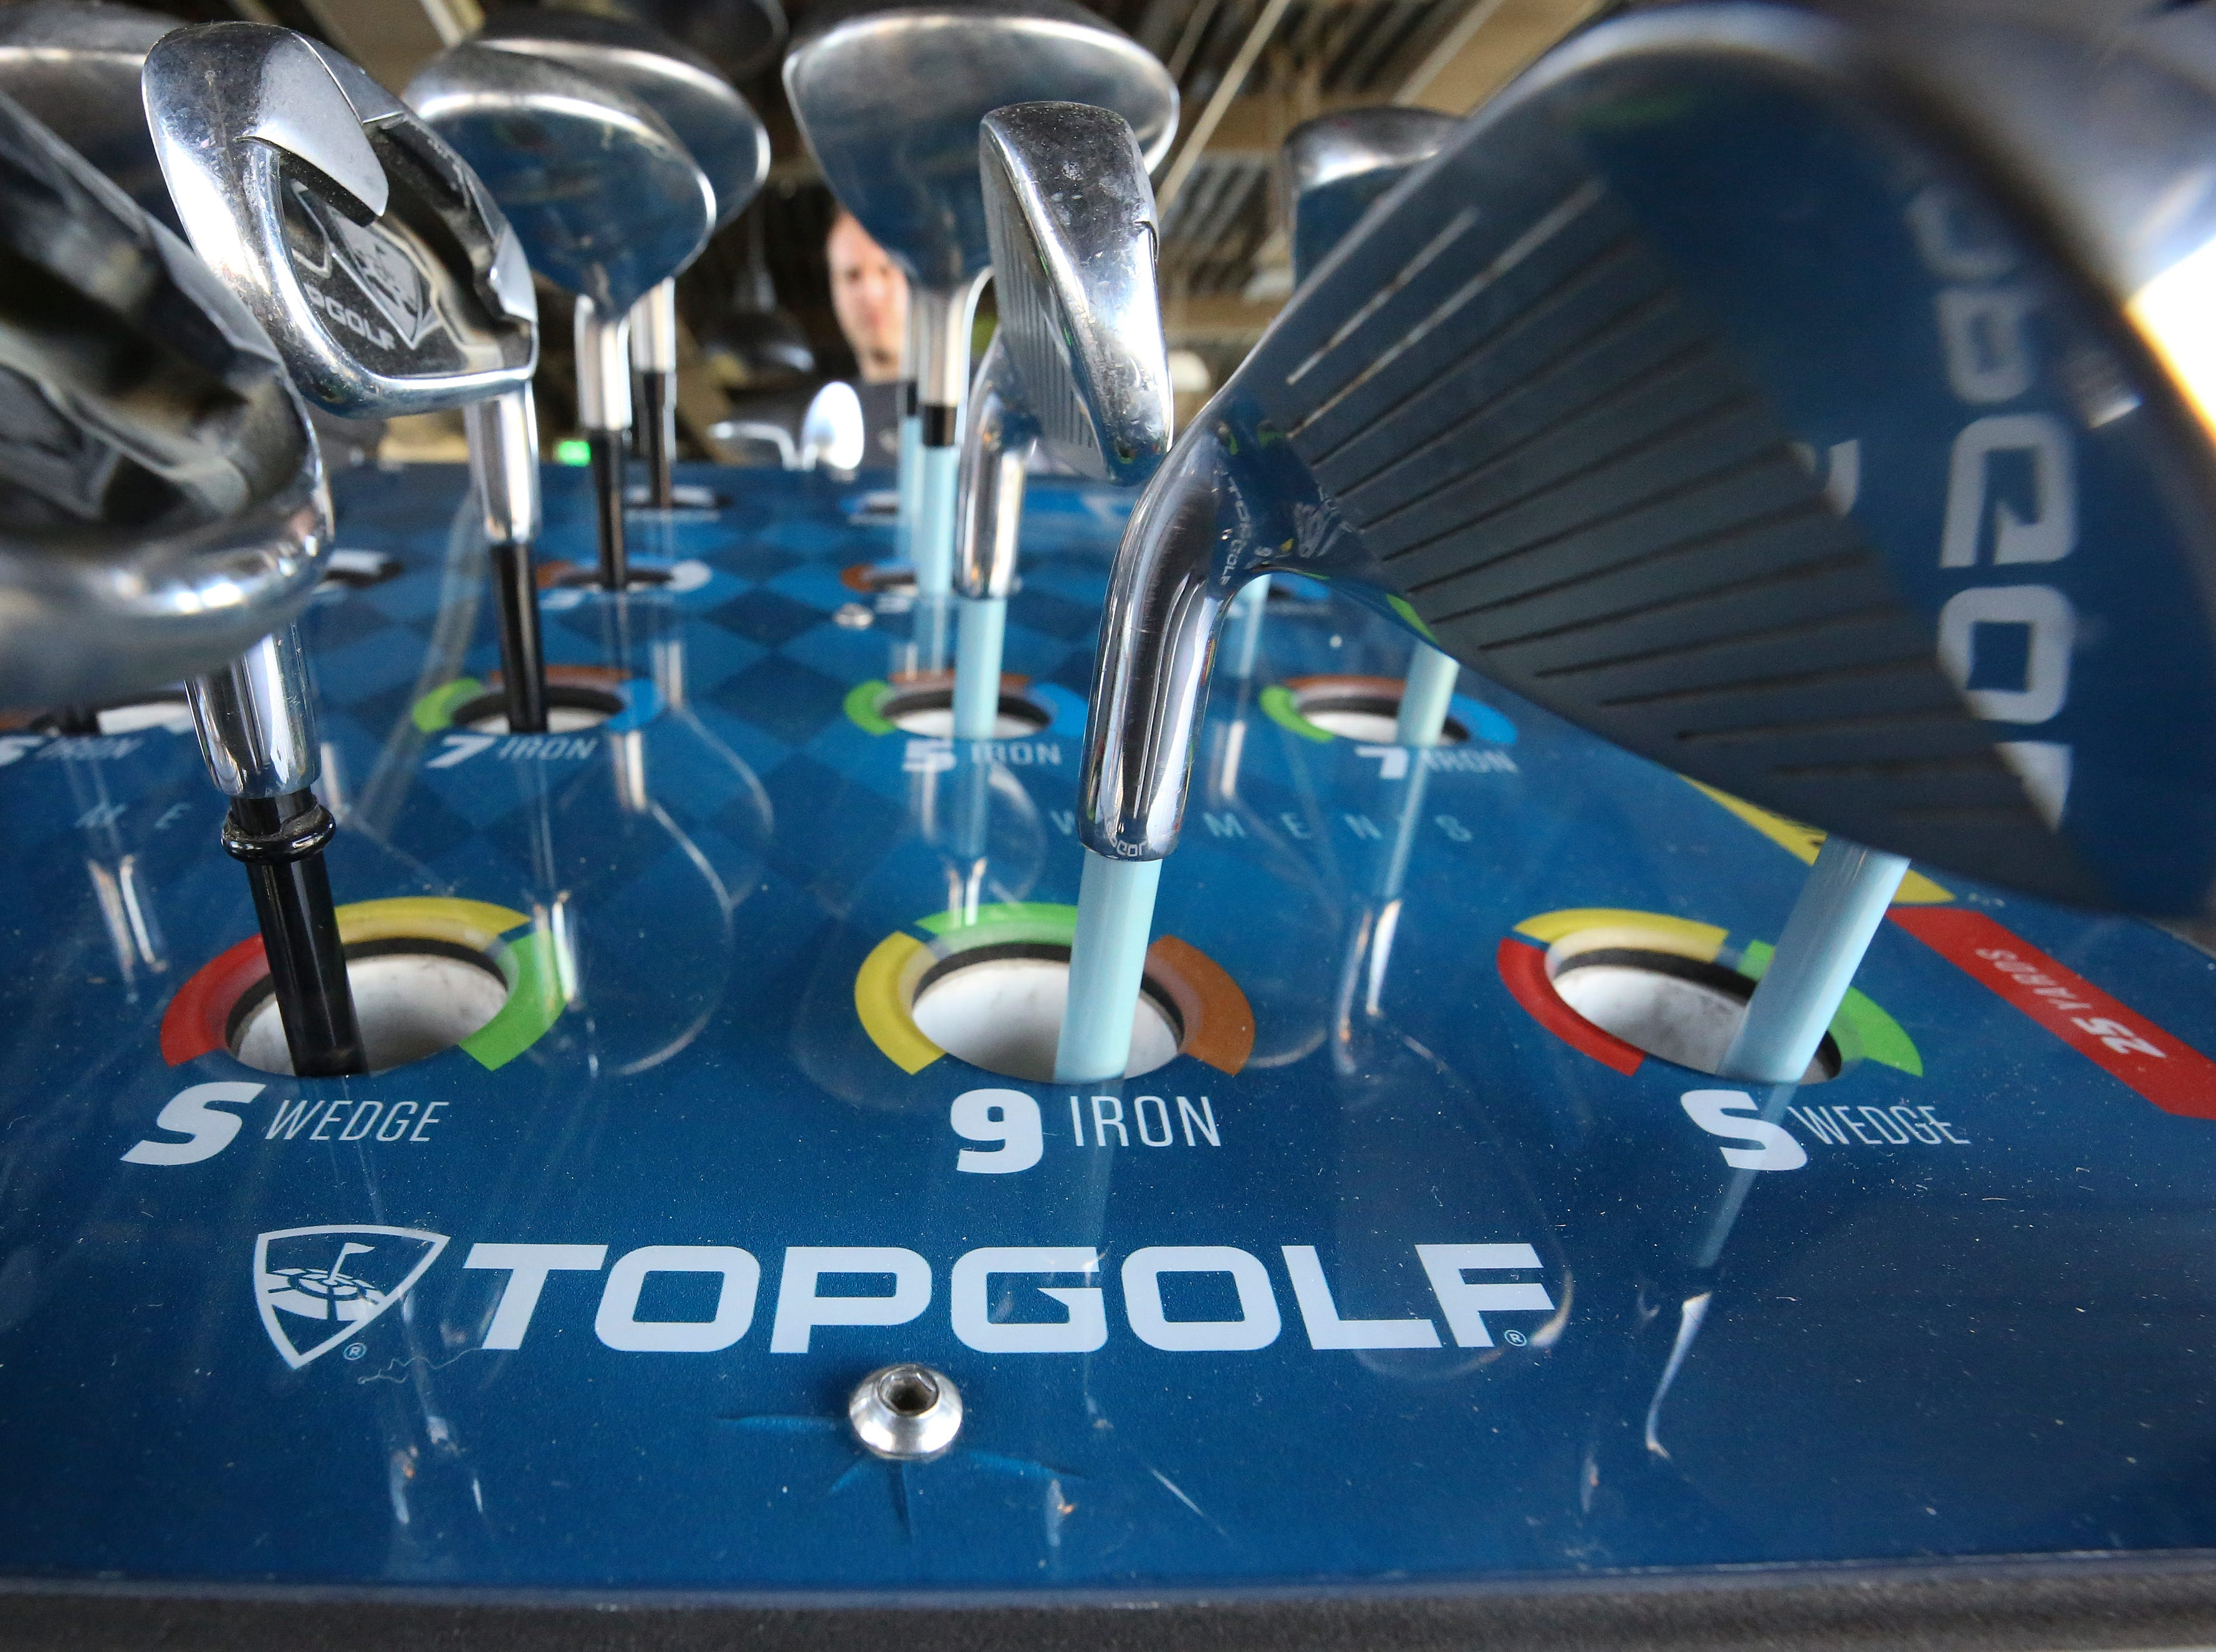 Golf clubs at the Topgolf outside of Cincinnati, Ohio.  Topgolf is proposing to build a facility at the Oxmoor Center in Louisville as they wait for a decision by the Metro planning commission. 